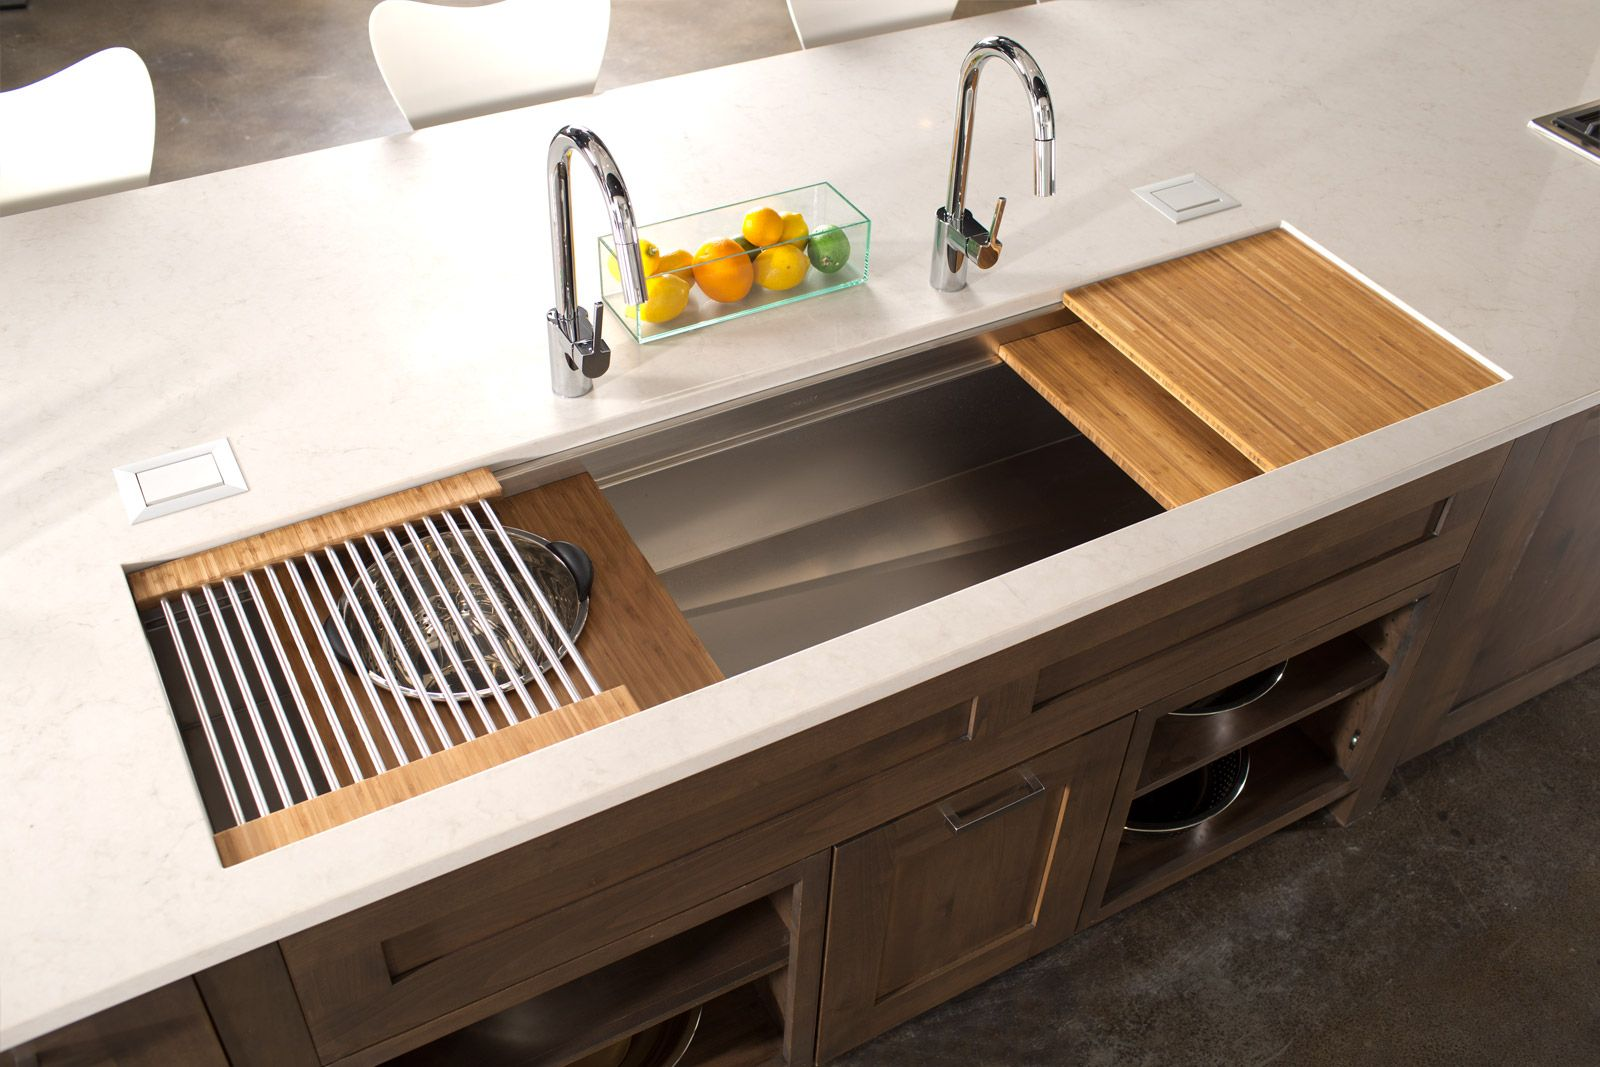 Kitchen Ideas Tulsa Galley Sink this galley workstation kitchen was donetulsa, oklahoma-based